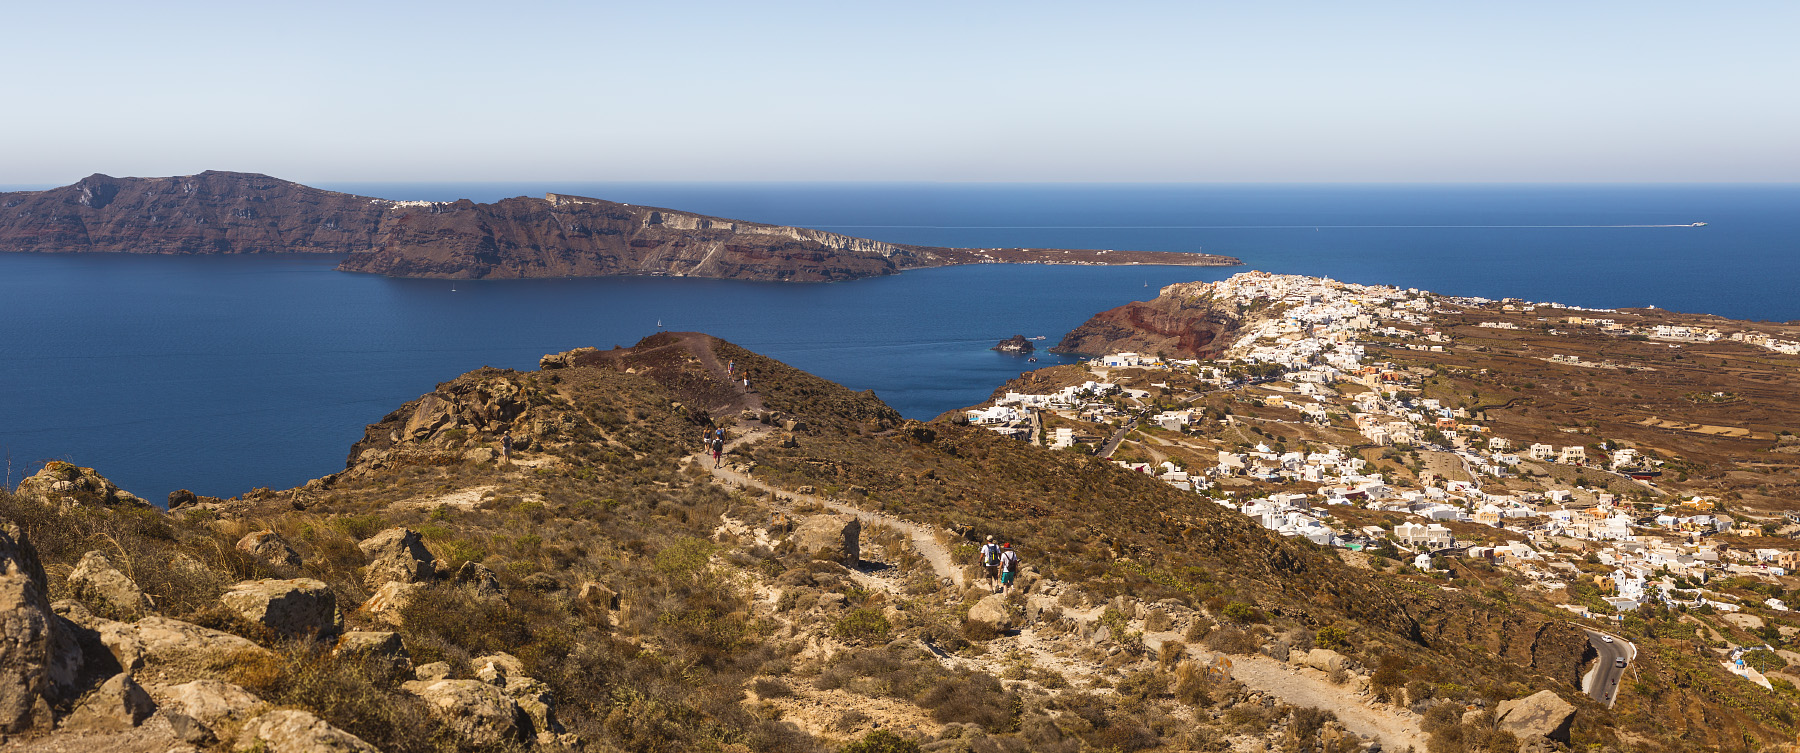 Almost at the North end of Santorini. The town of Oia is on the right, island Thirasia on the left.